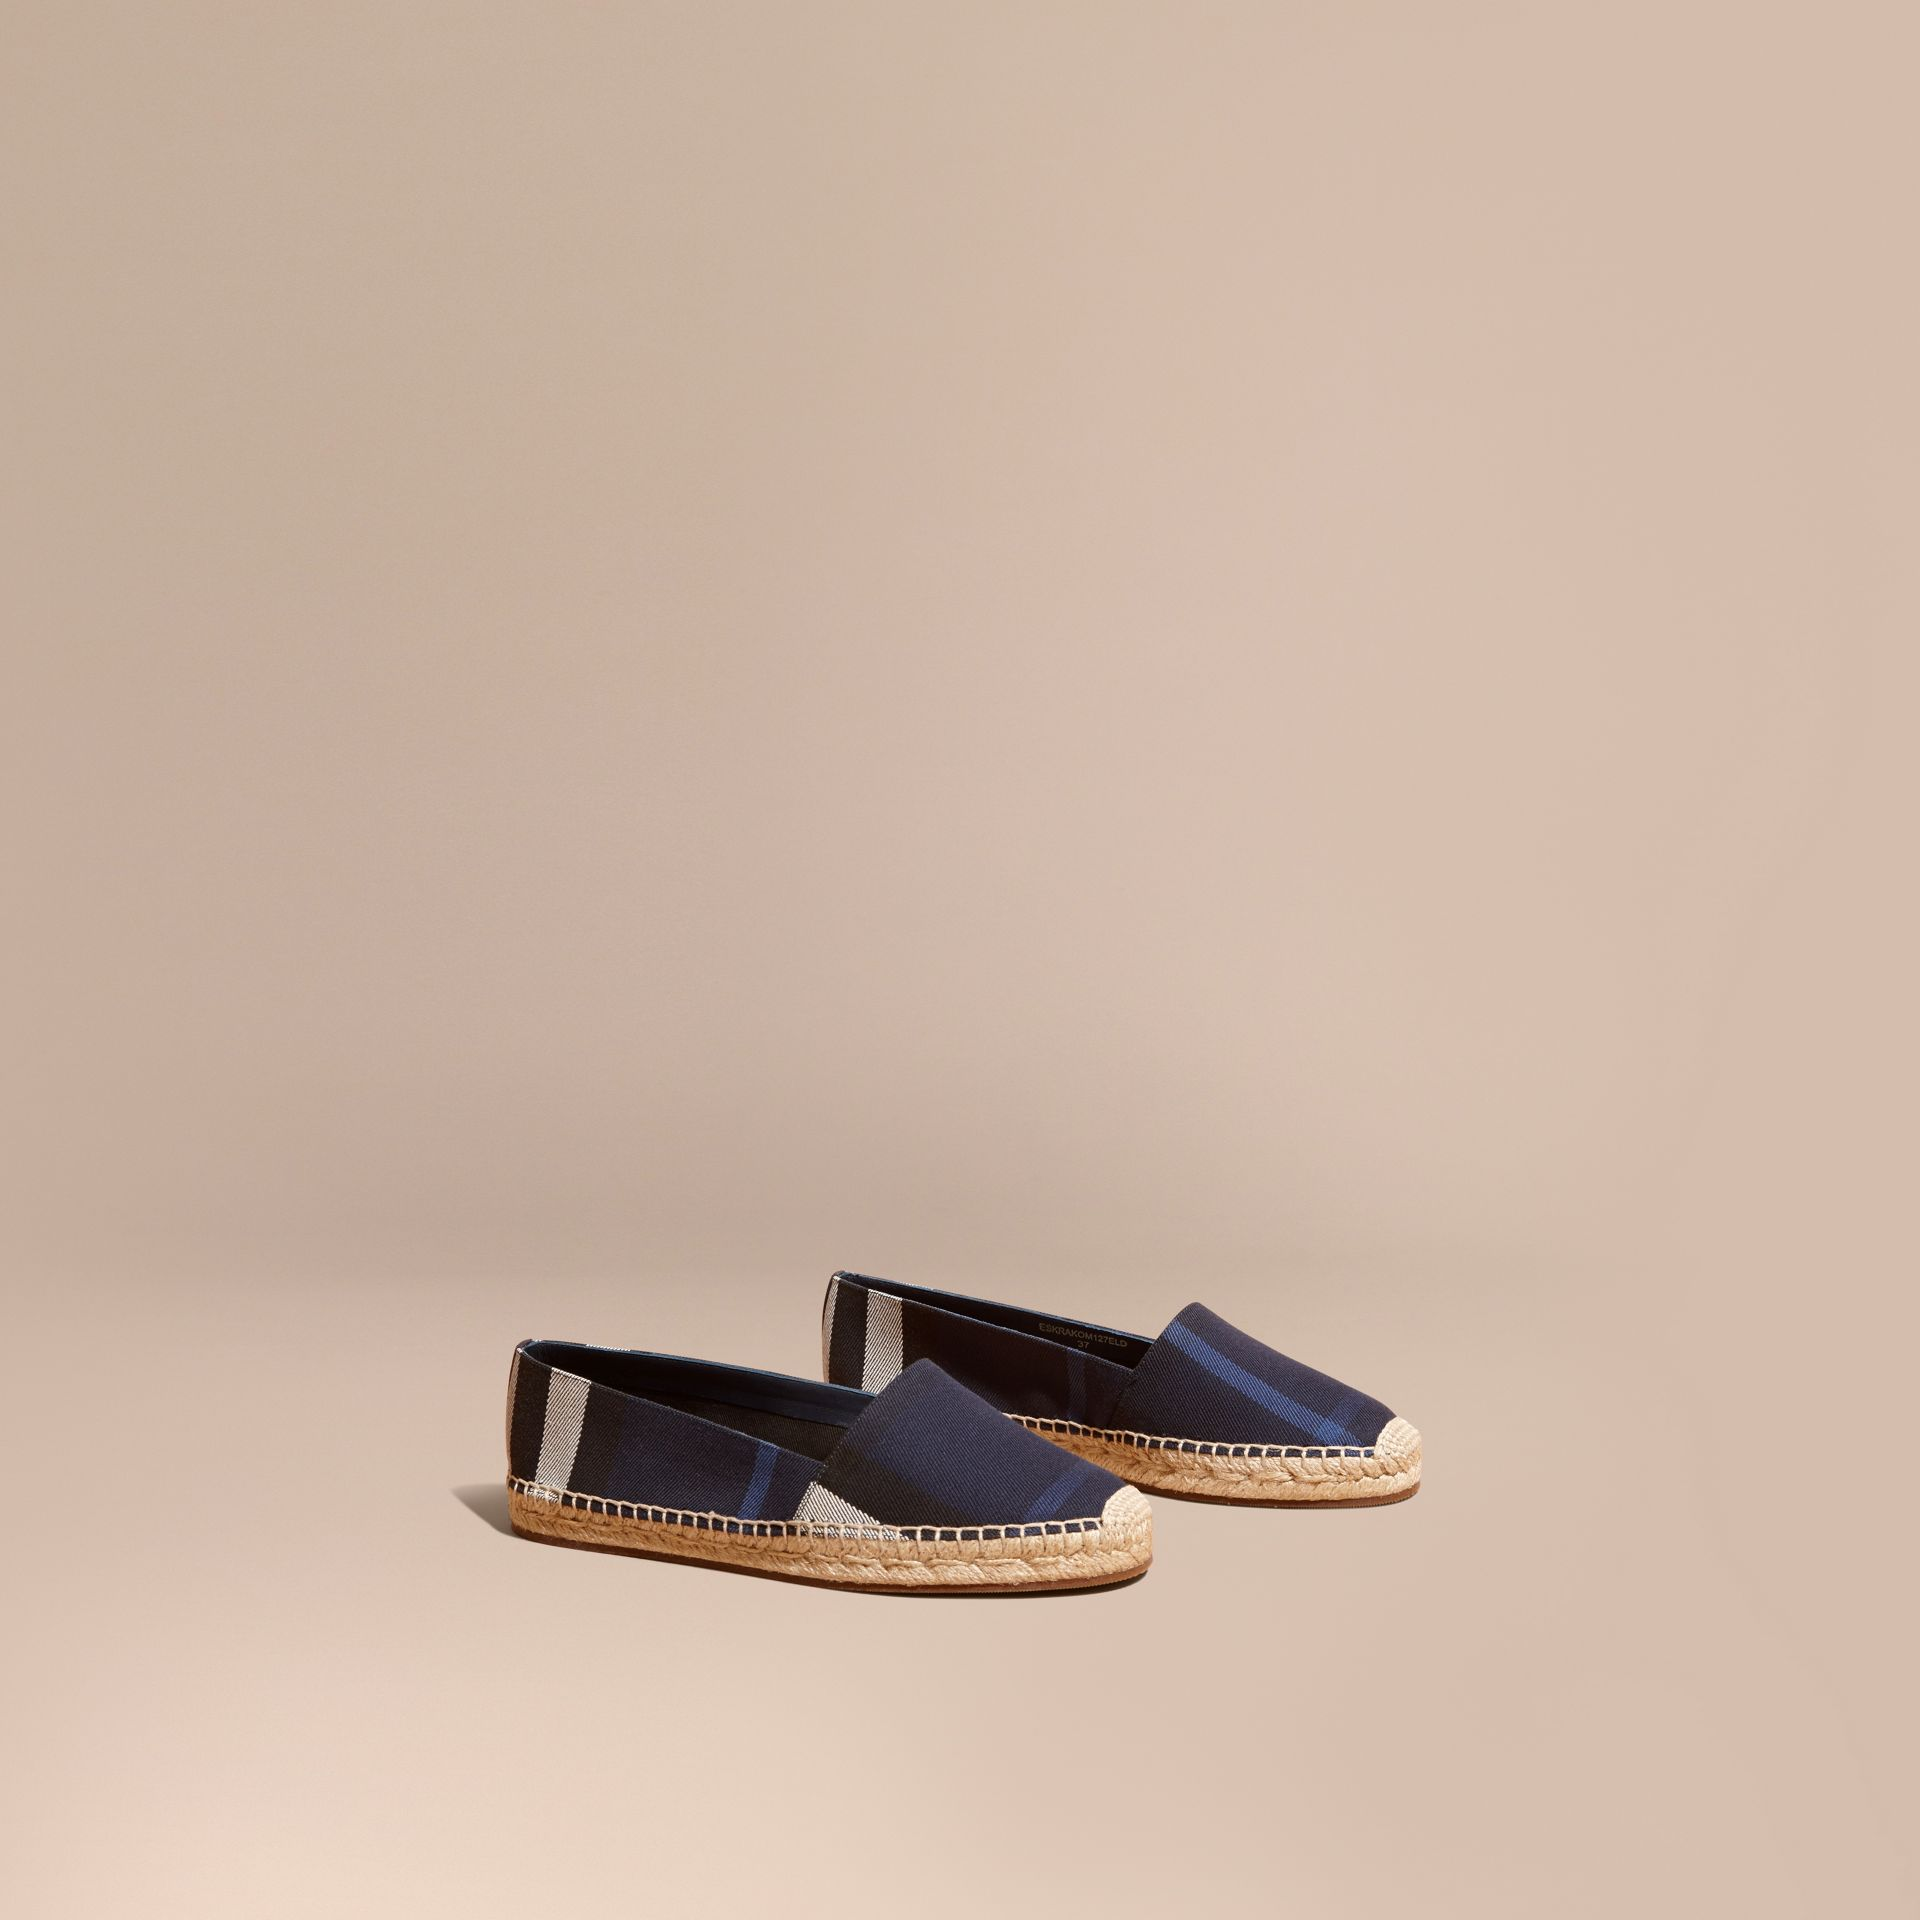 Leather Trim Canvas Check Espadrilles Indigo Blue - gallery image 1